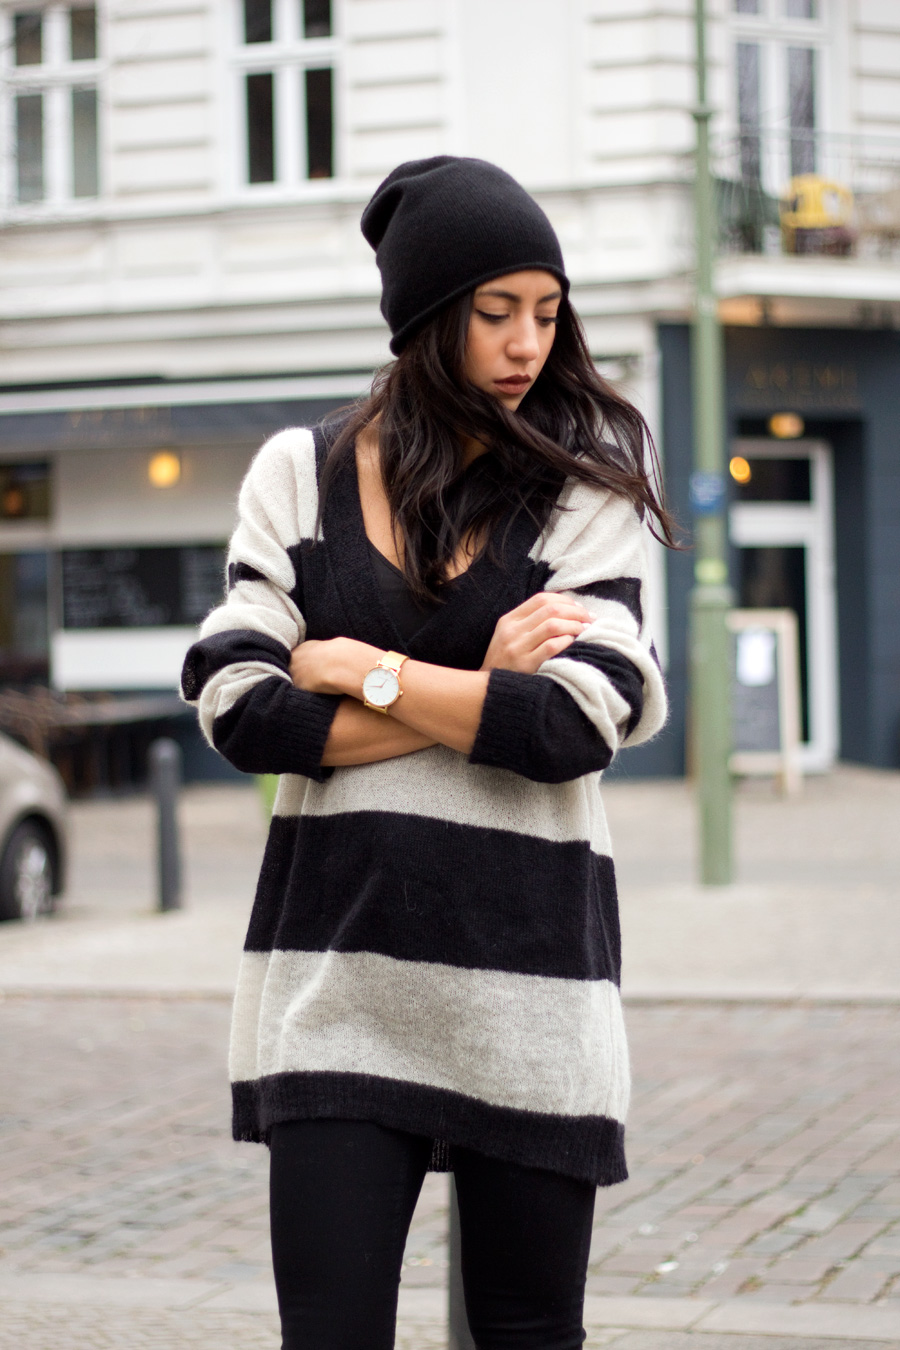 Deep V Neck Trend: Kayla Seah is wearing a black and white striped deep V neck sweater from Carin Wester